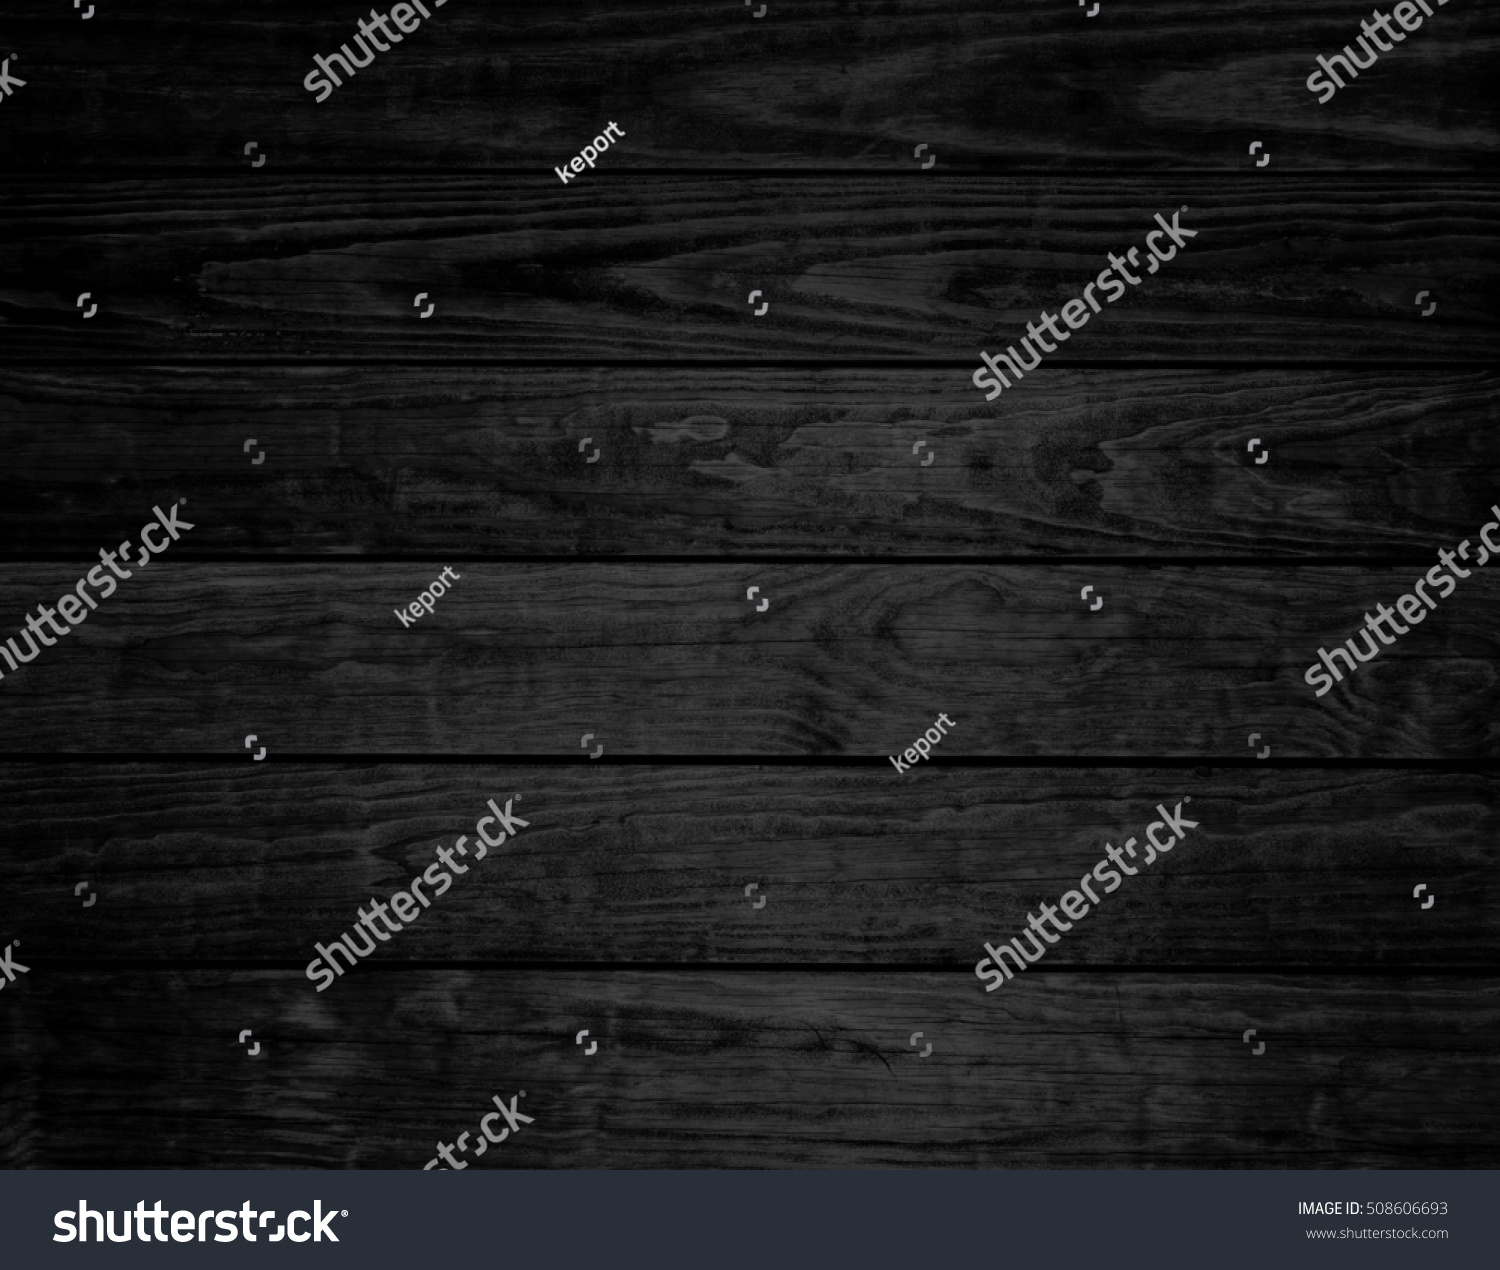 Rustic Black Background With Wooden Planks